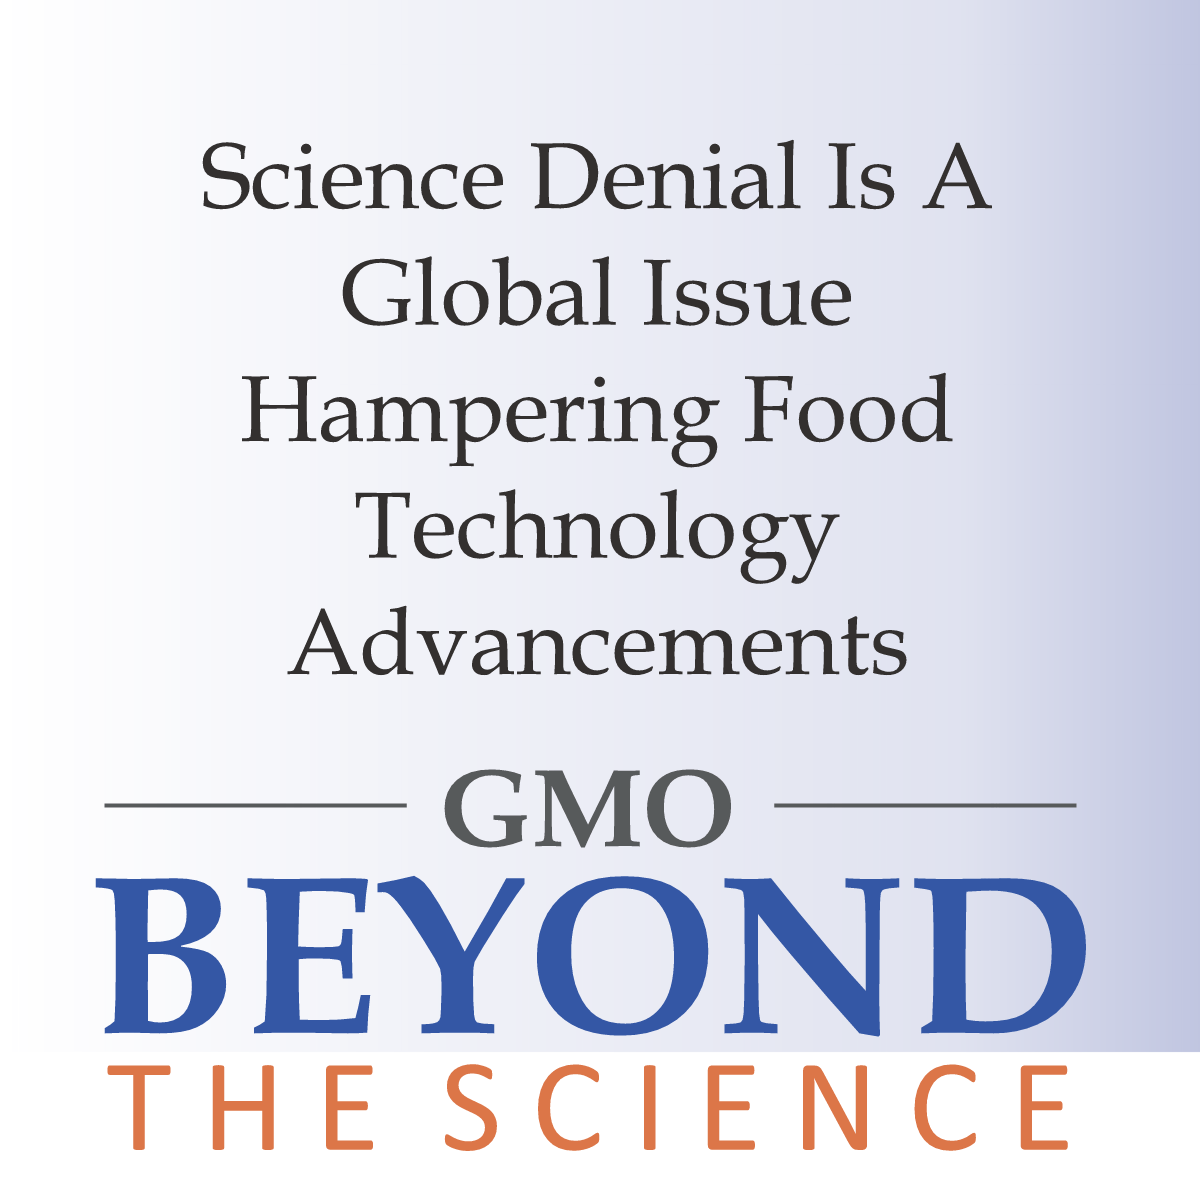 Science Denial Is A Global Issue Hampering Food Technology Advancements